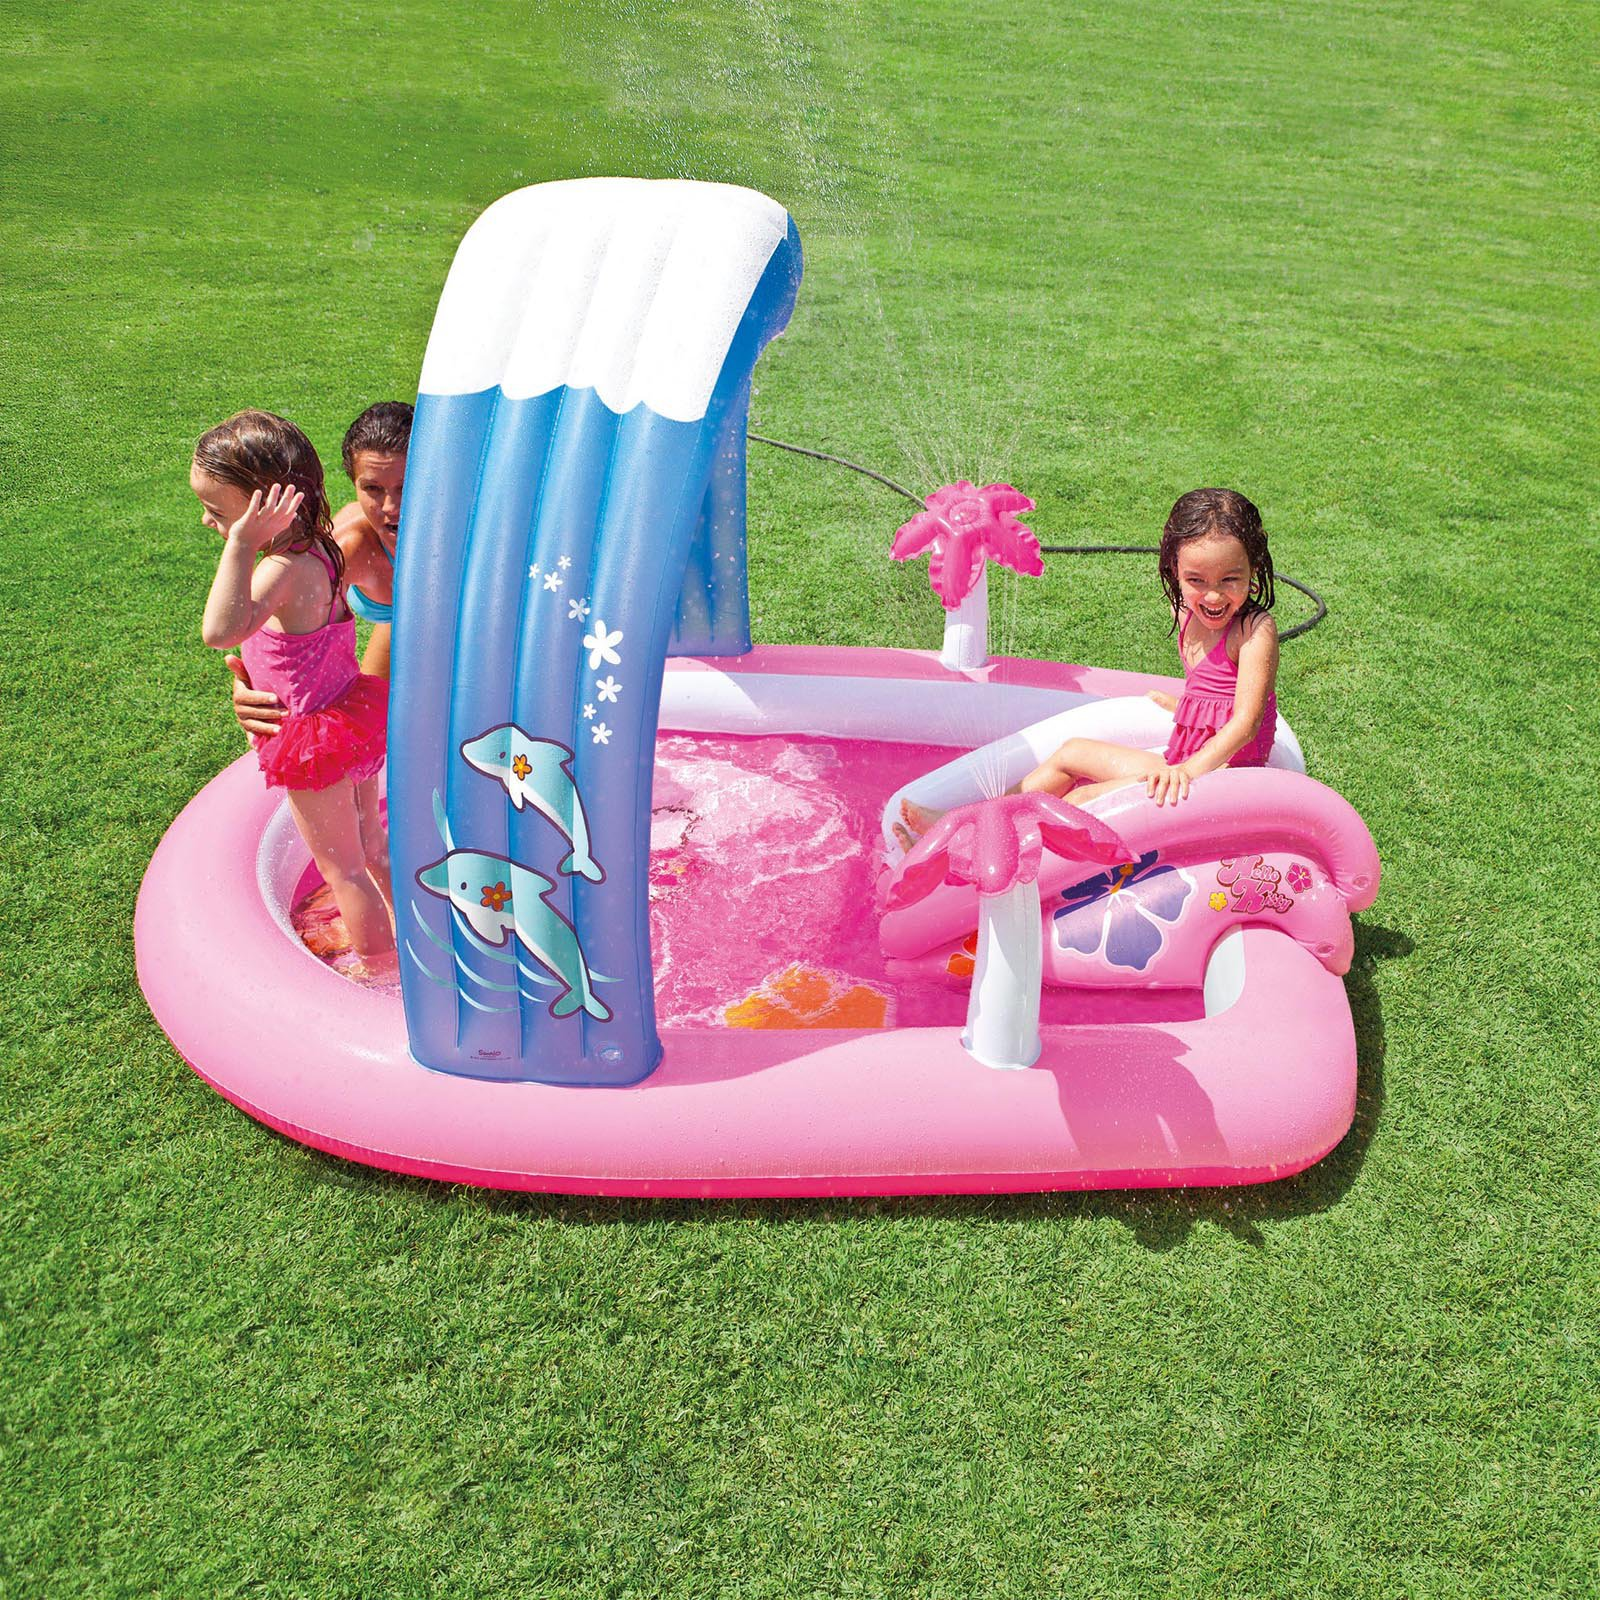 Intex Hello Kitty Play Center by Intex